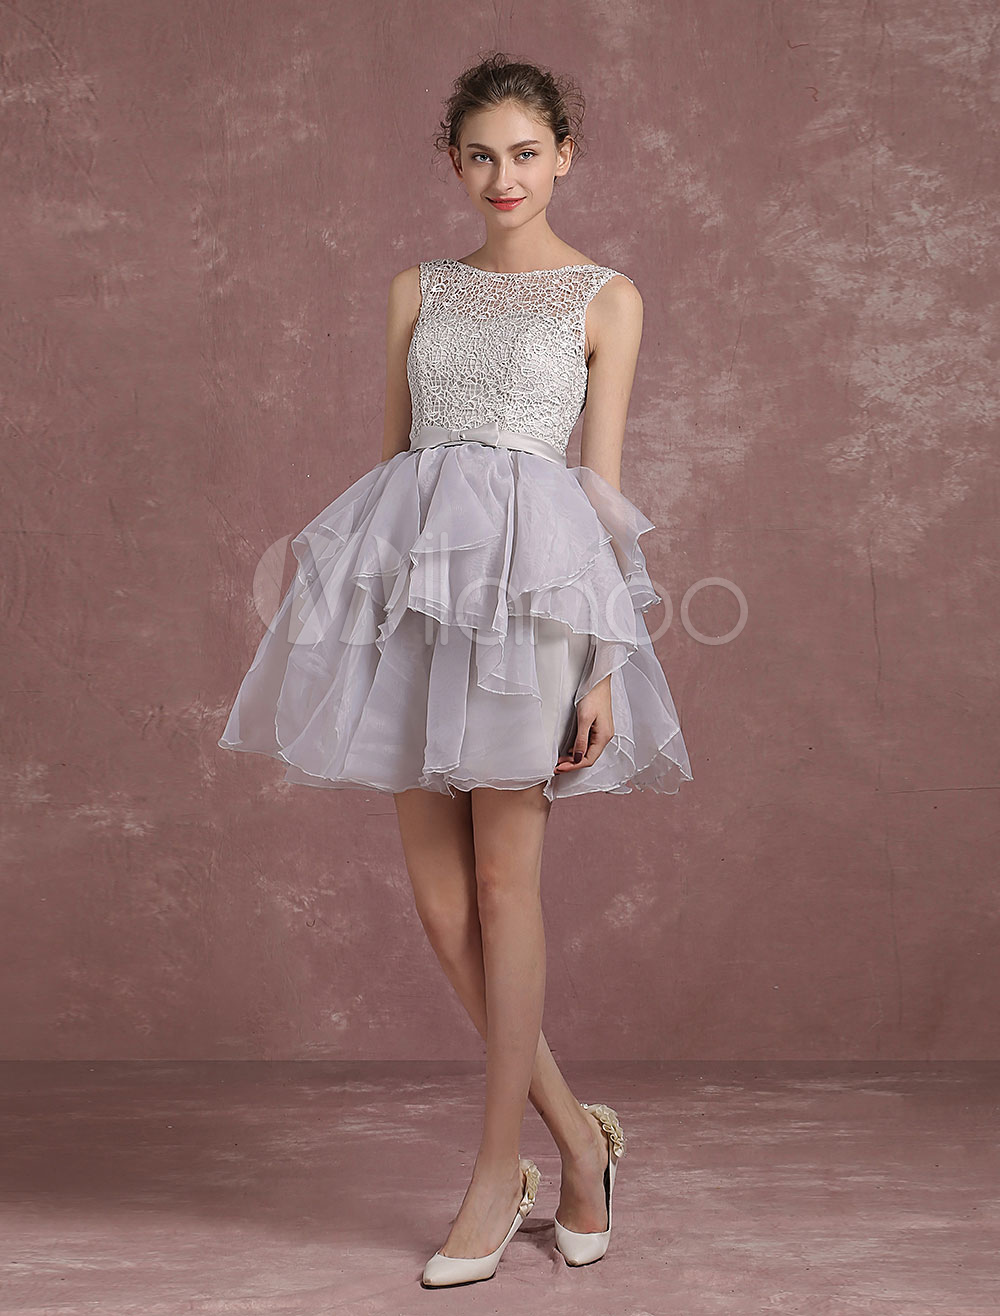 Buy Short Homecoming Dresses Backless Illusion Neckline Organza Graduation Dresses A Line Tiered Lace Up Party Dresses With Bow Sash for $65.99 in Milanoo store